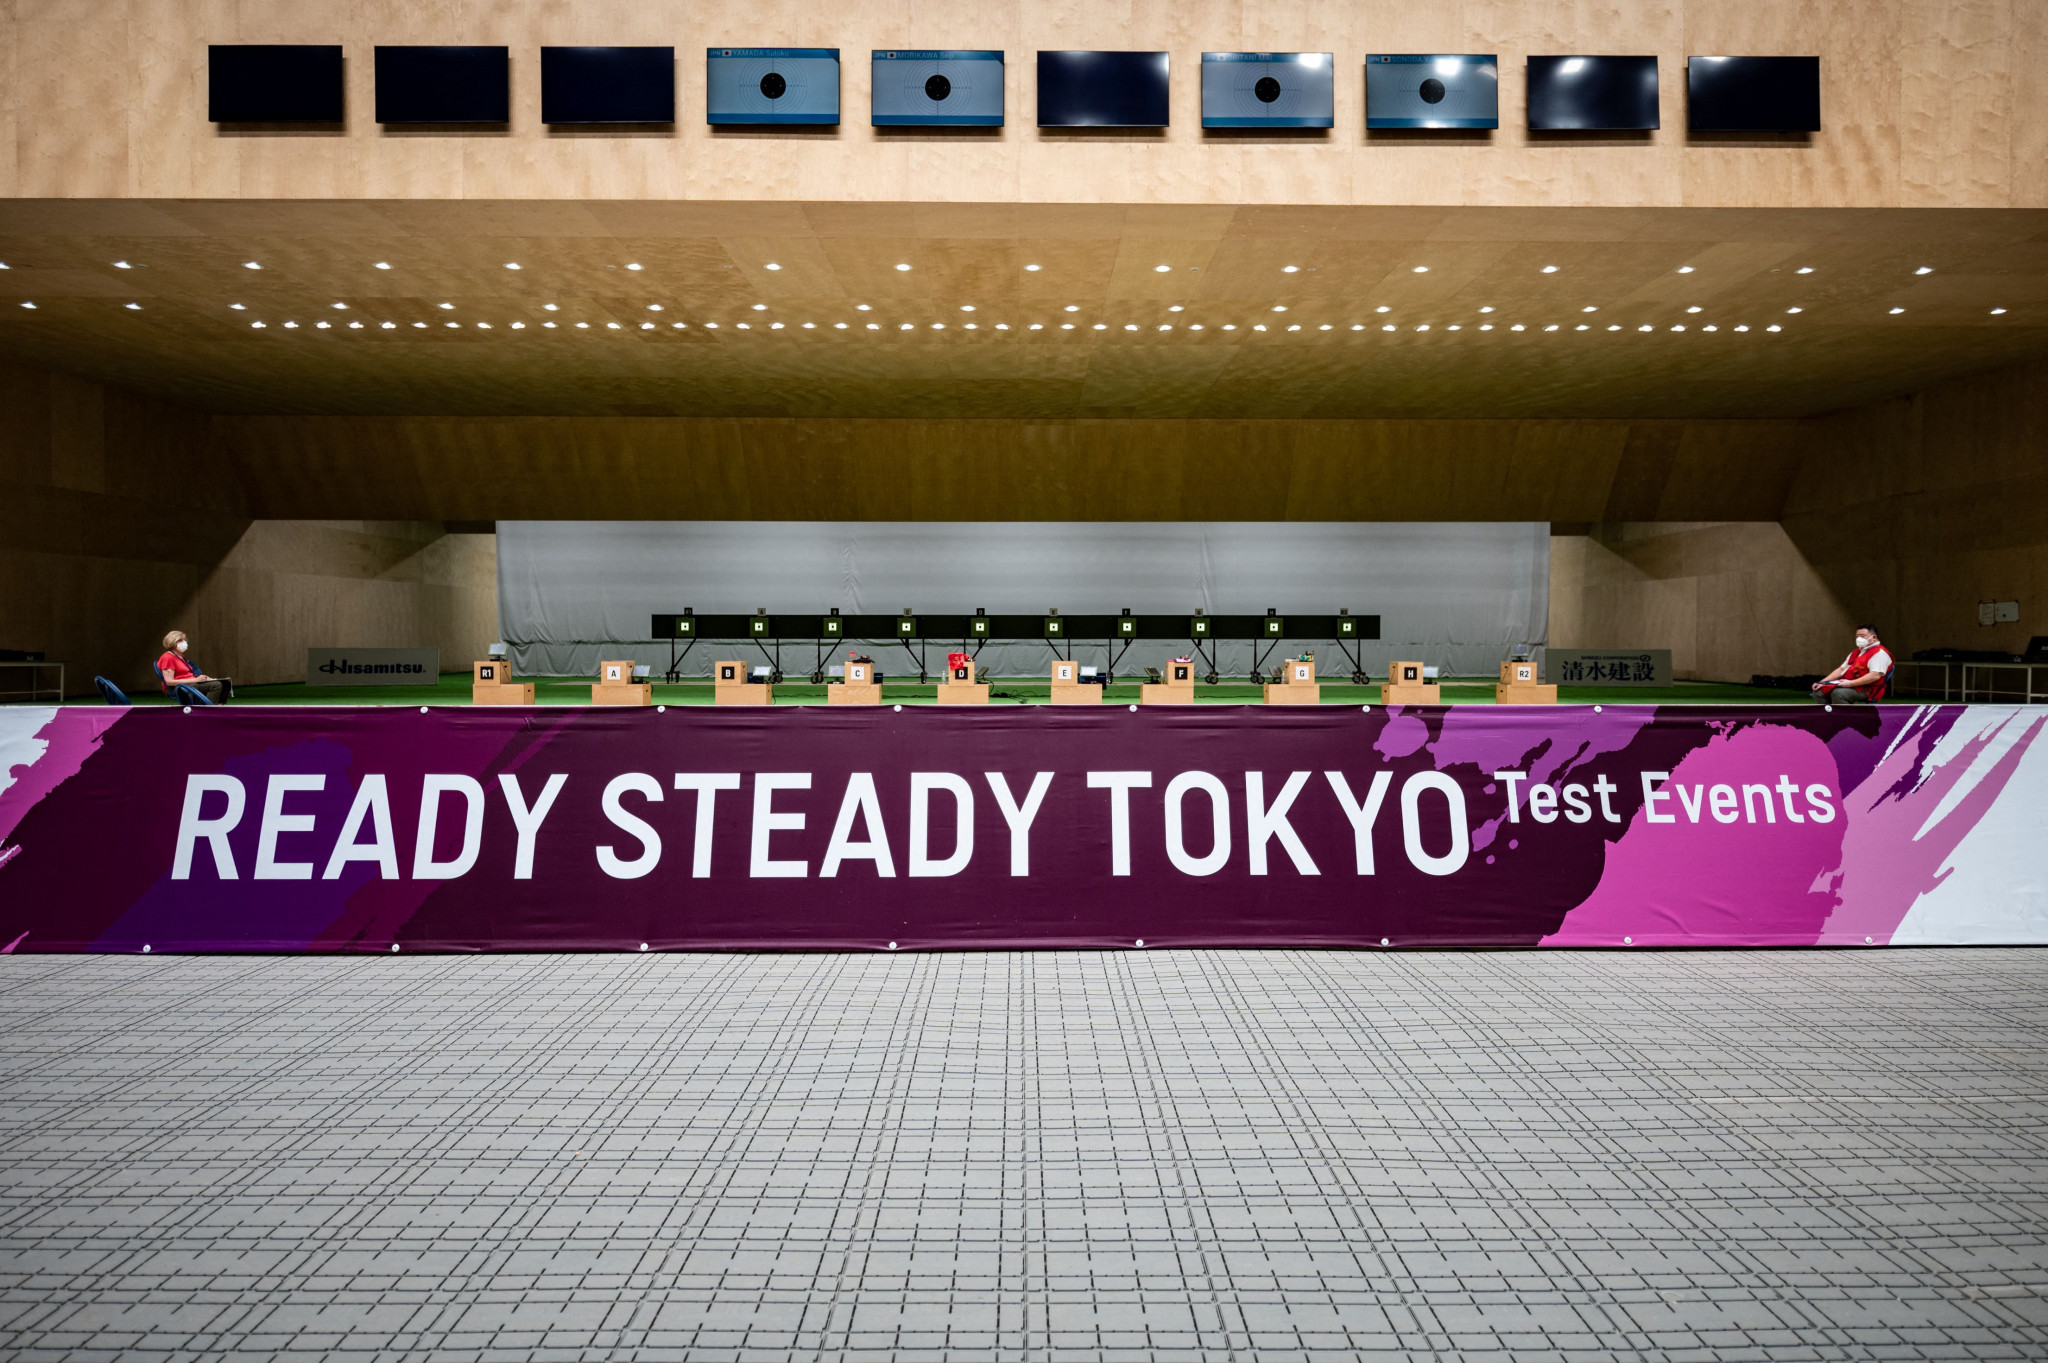 Tokyo 2020 has highlighted the success of test events to show the Games can be held safely ©Getty Images